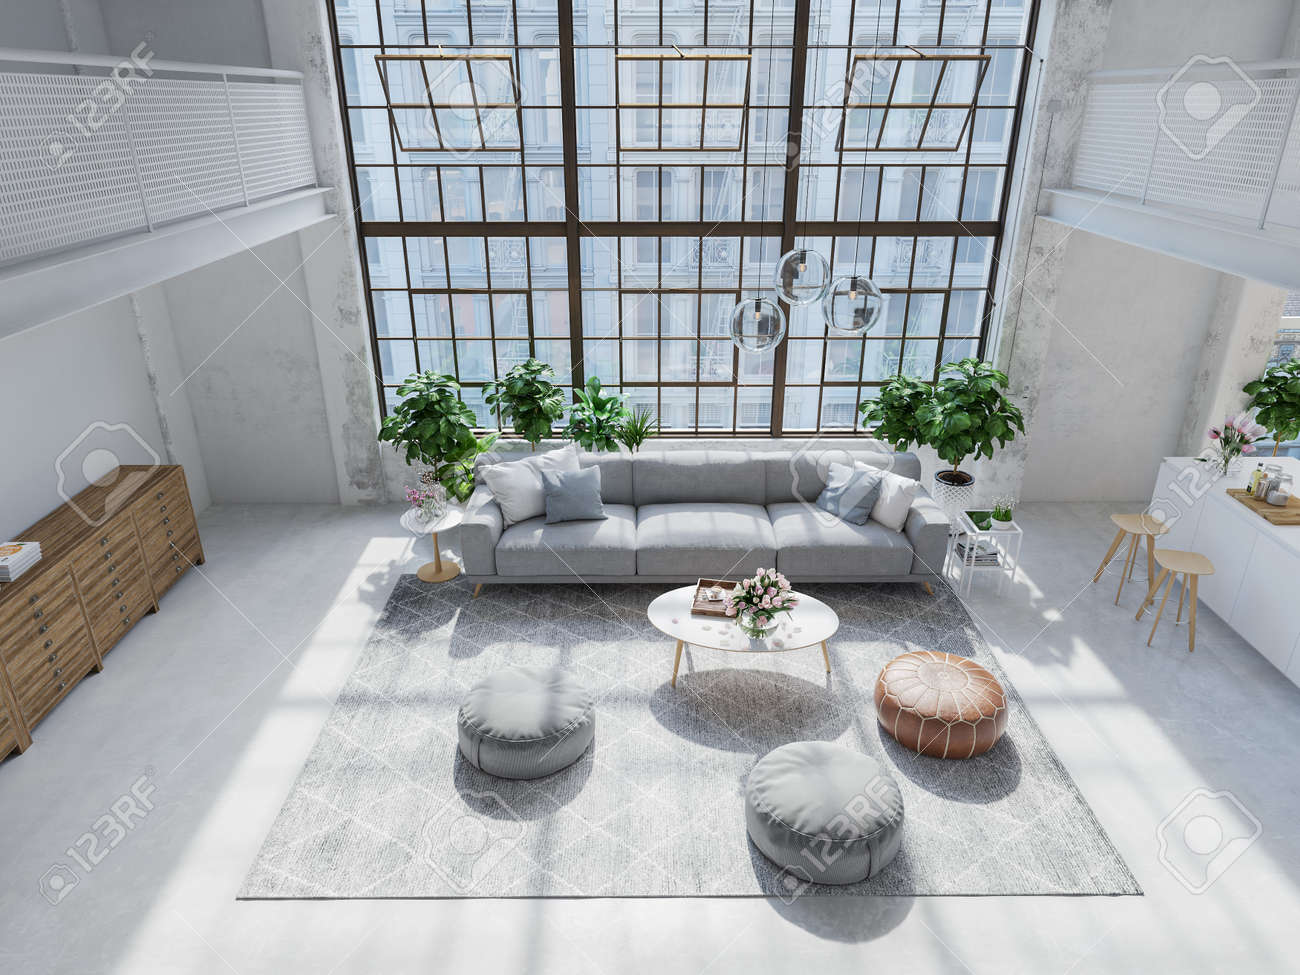 New Modern City Loft Apartment 3d Rendering Stock Photo Picture And Royalty Free Image Image 120319919